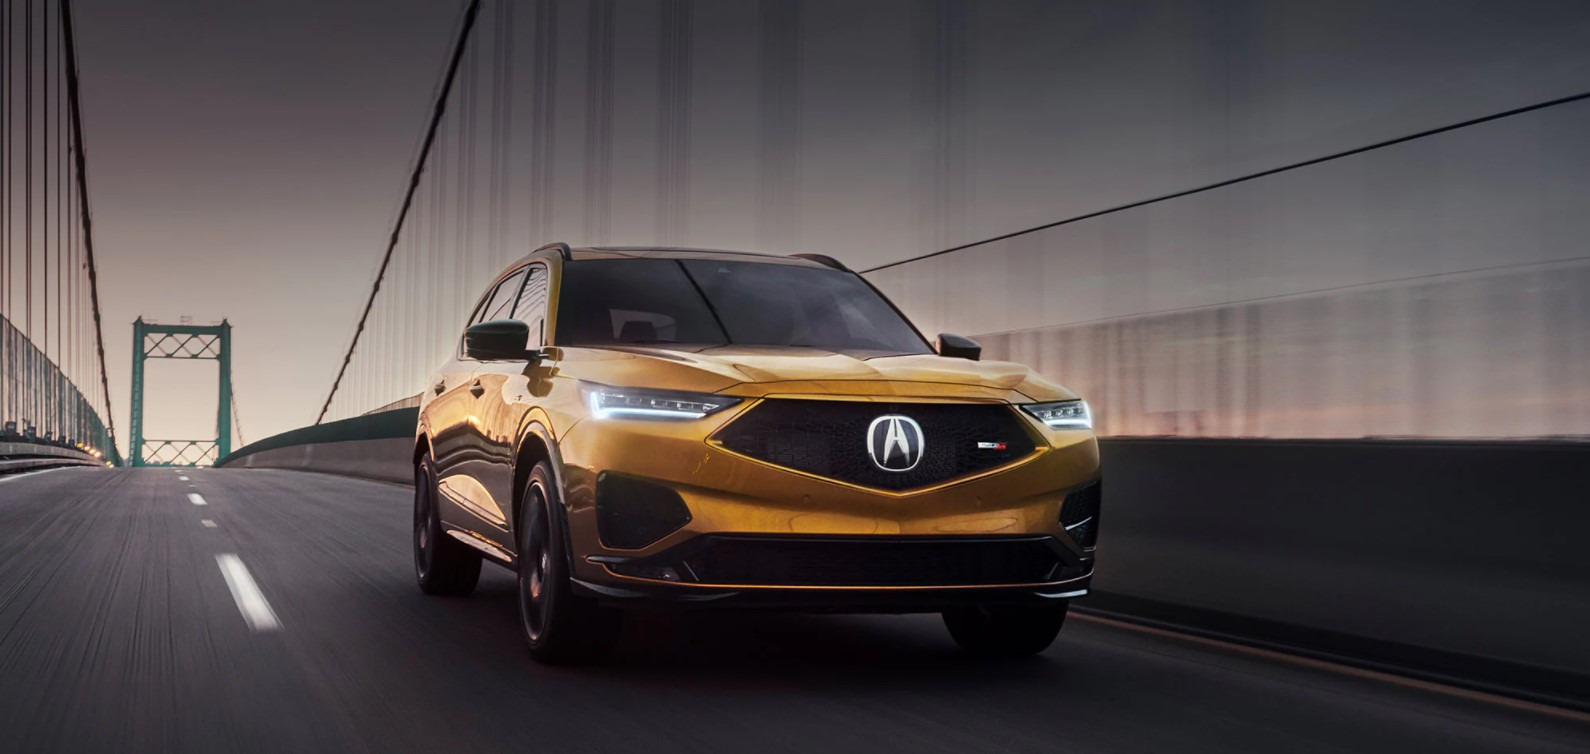 Acura MDX Type Ss available in Lynbrook, NY at Acura of Valley Stream